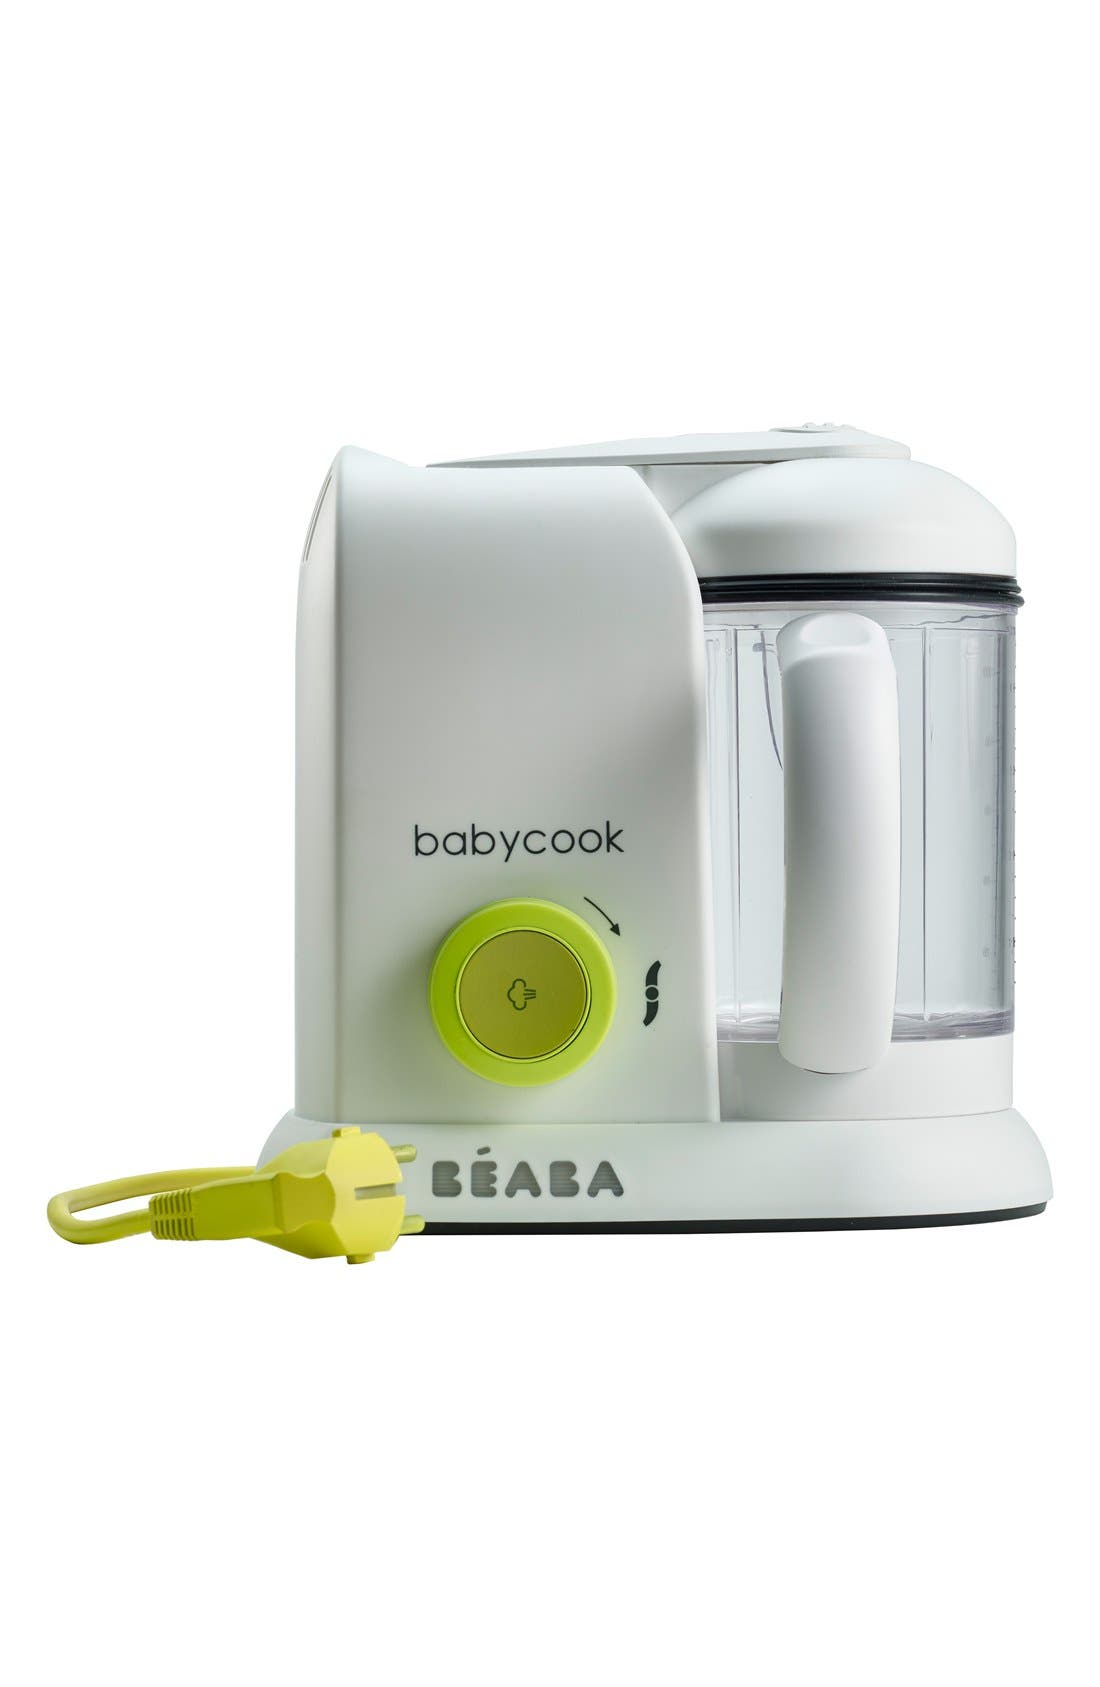 BÉABA 'Babycook®' Baby Food Maker